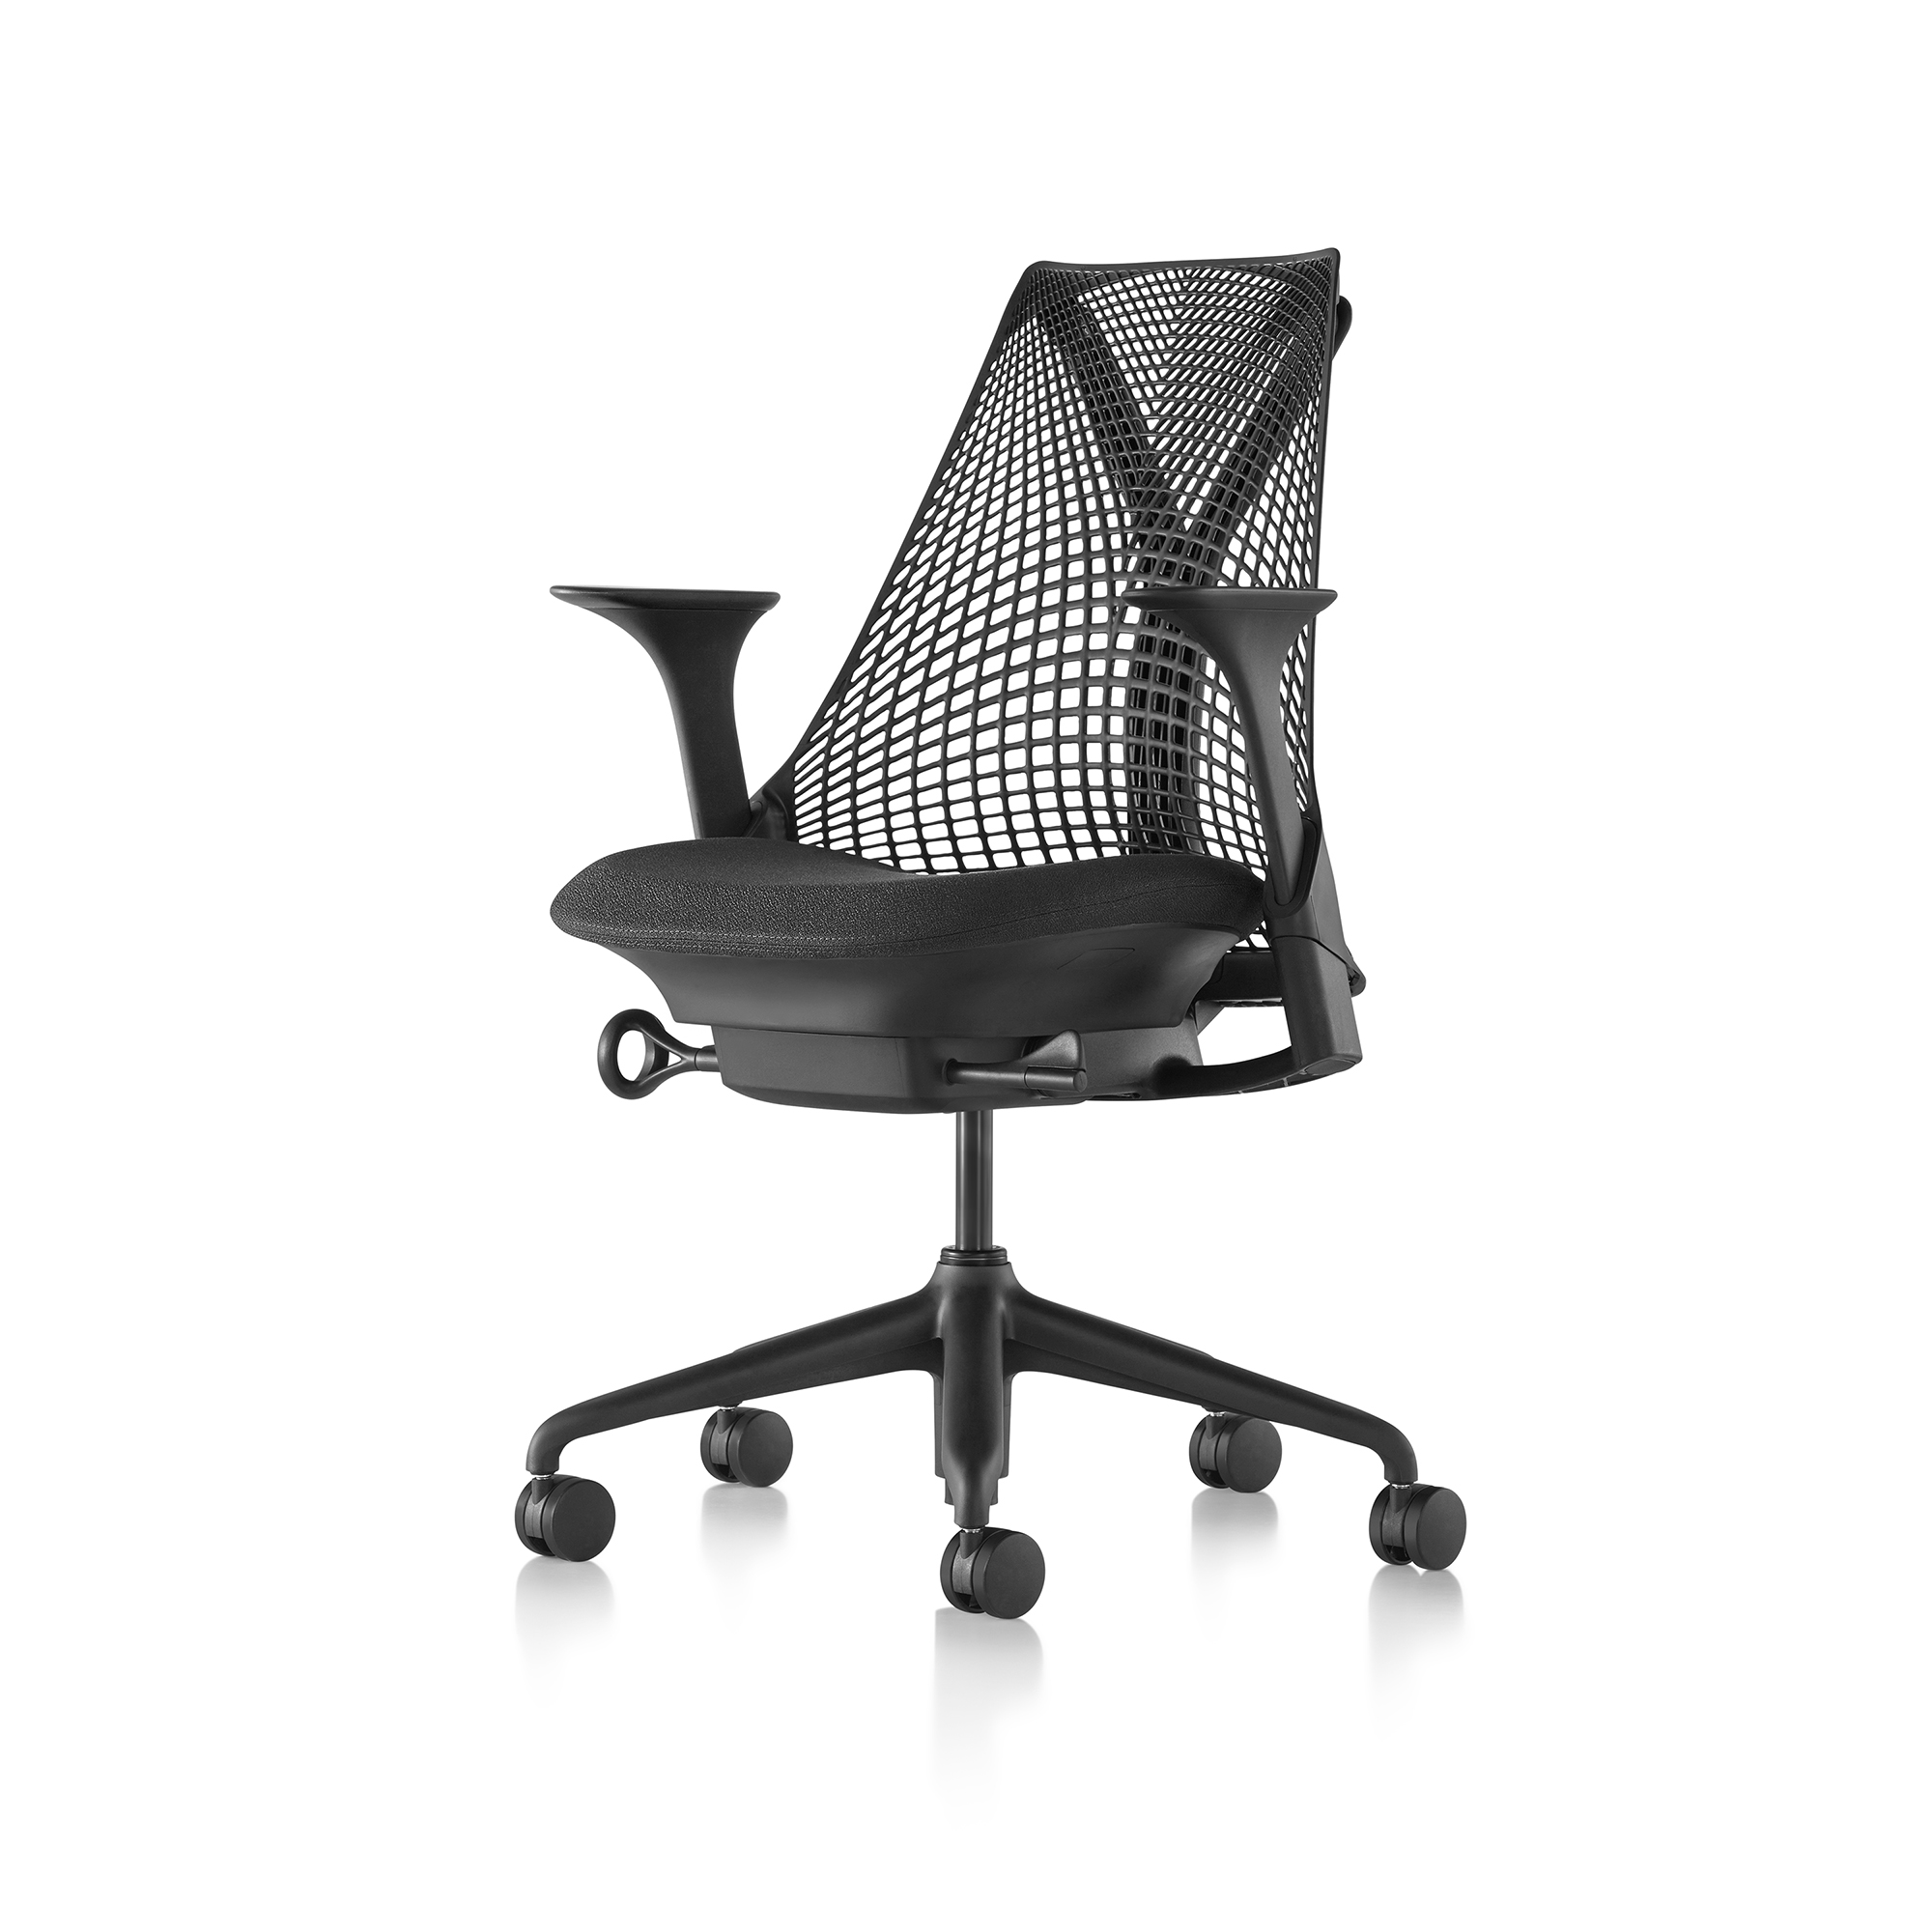 Sayl Chair - Black (Value at HK$5,548) - Quota: 3 units